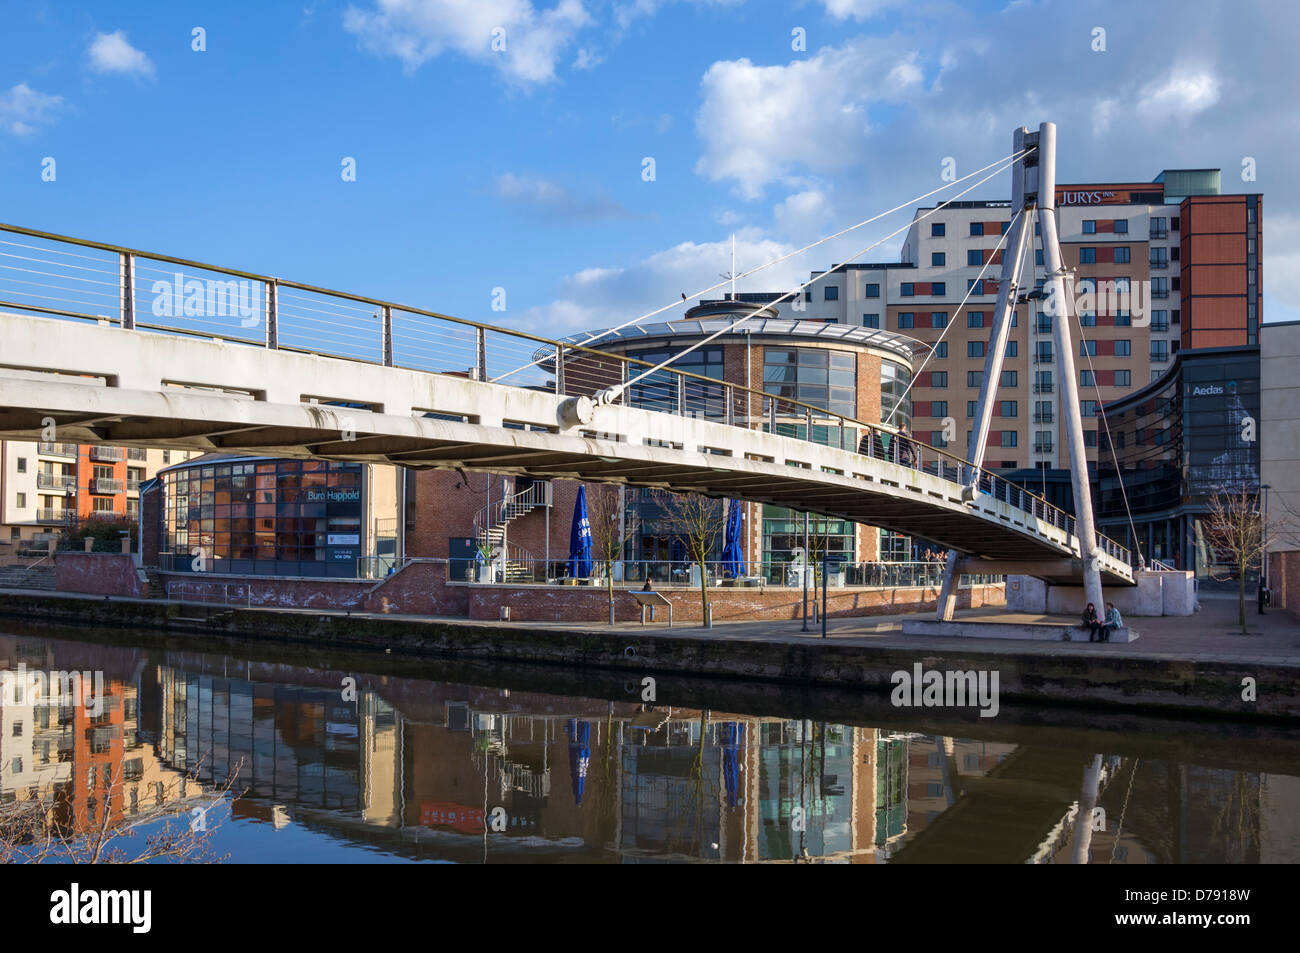 Footbridge over the River Aire looking towards Brewery Wharf, Leeds, West Yorkshire, UK - Stock Image